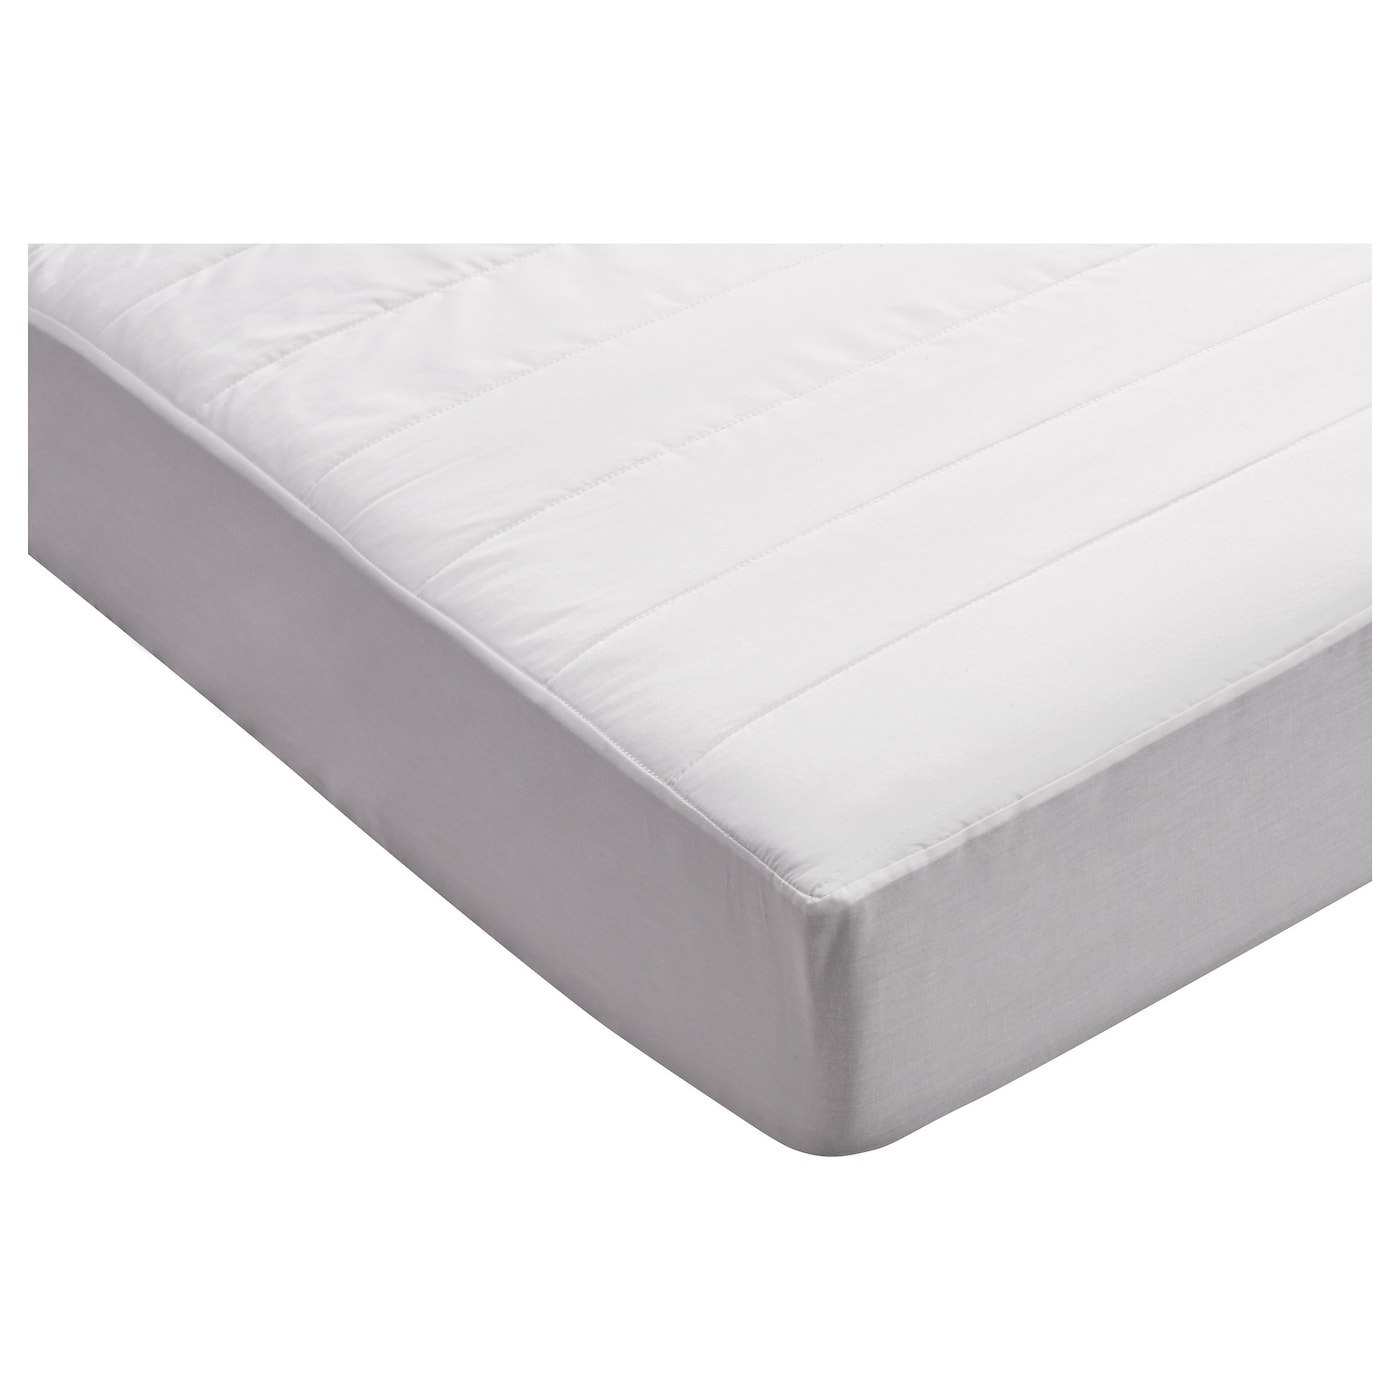 kattost mattress protector 80x200 cm ikea. Black Bedroom Furniture Sets. Home Design Ideas